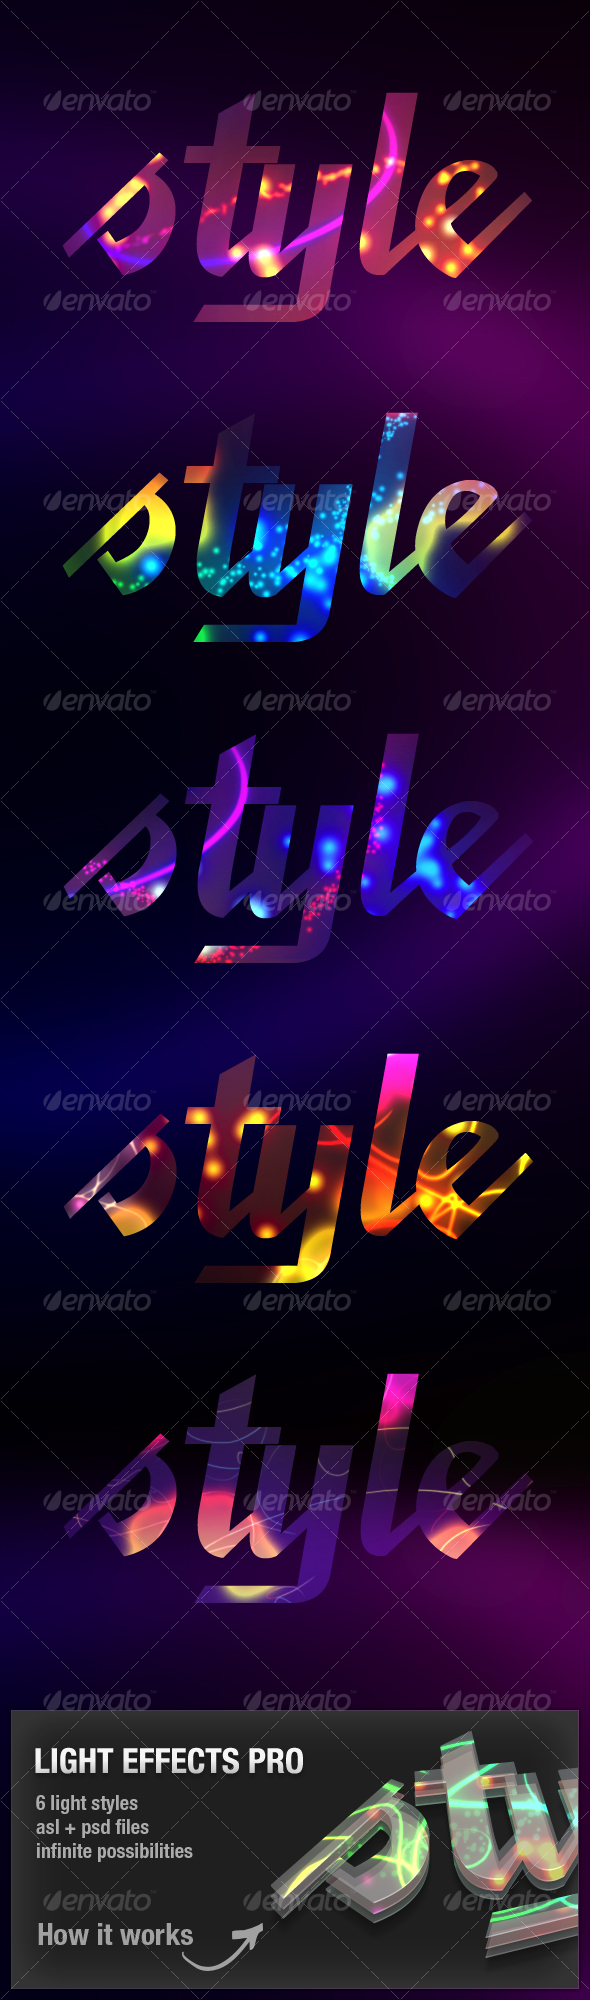 Ligth Effects Pro - Text Effects Styles